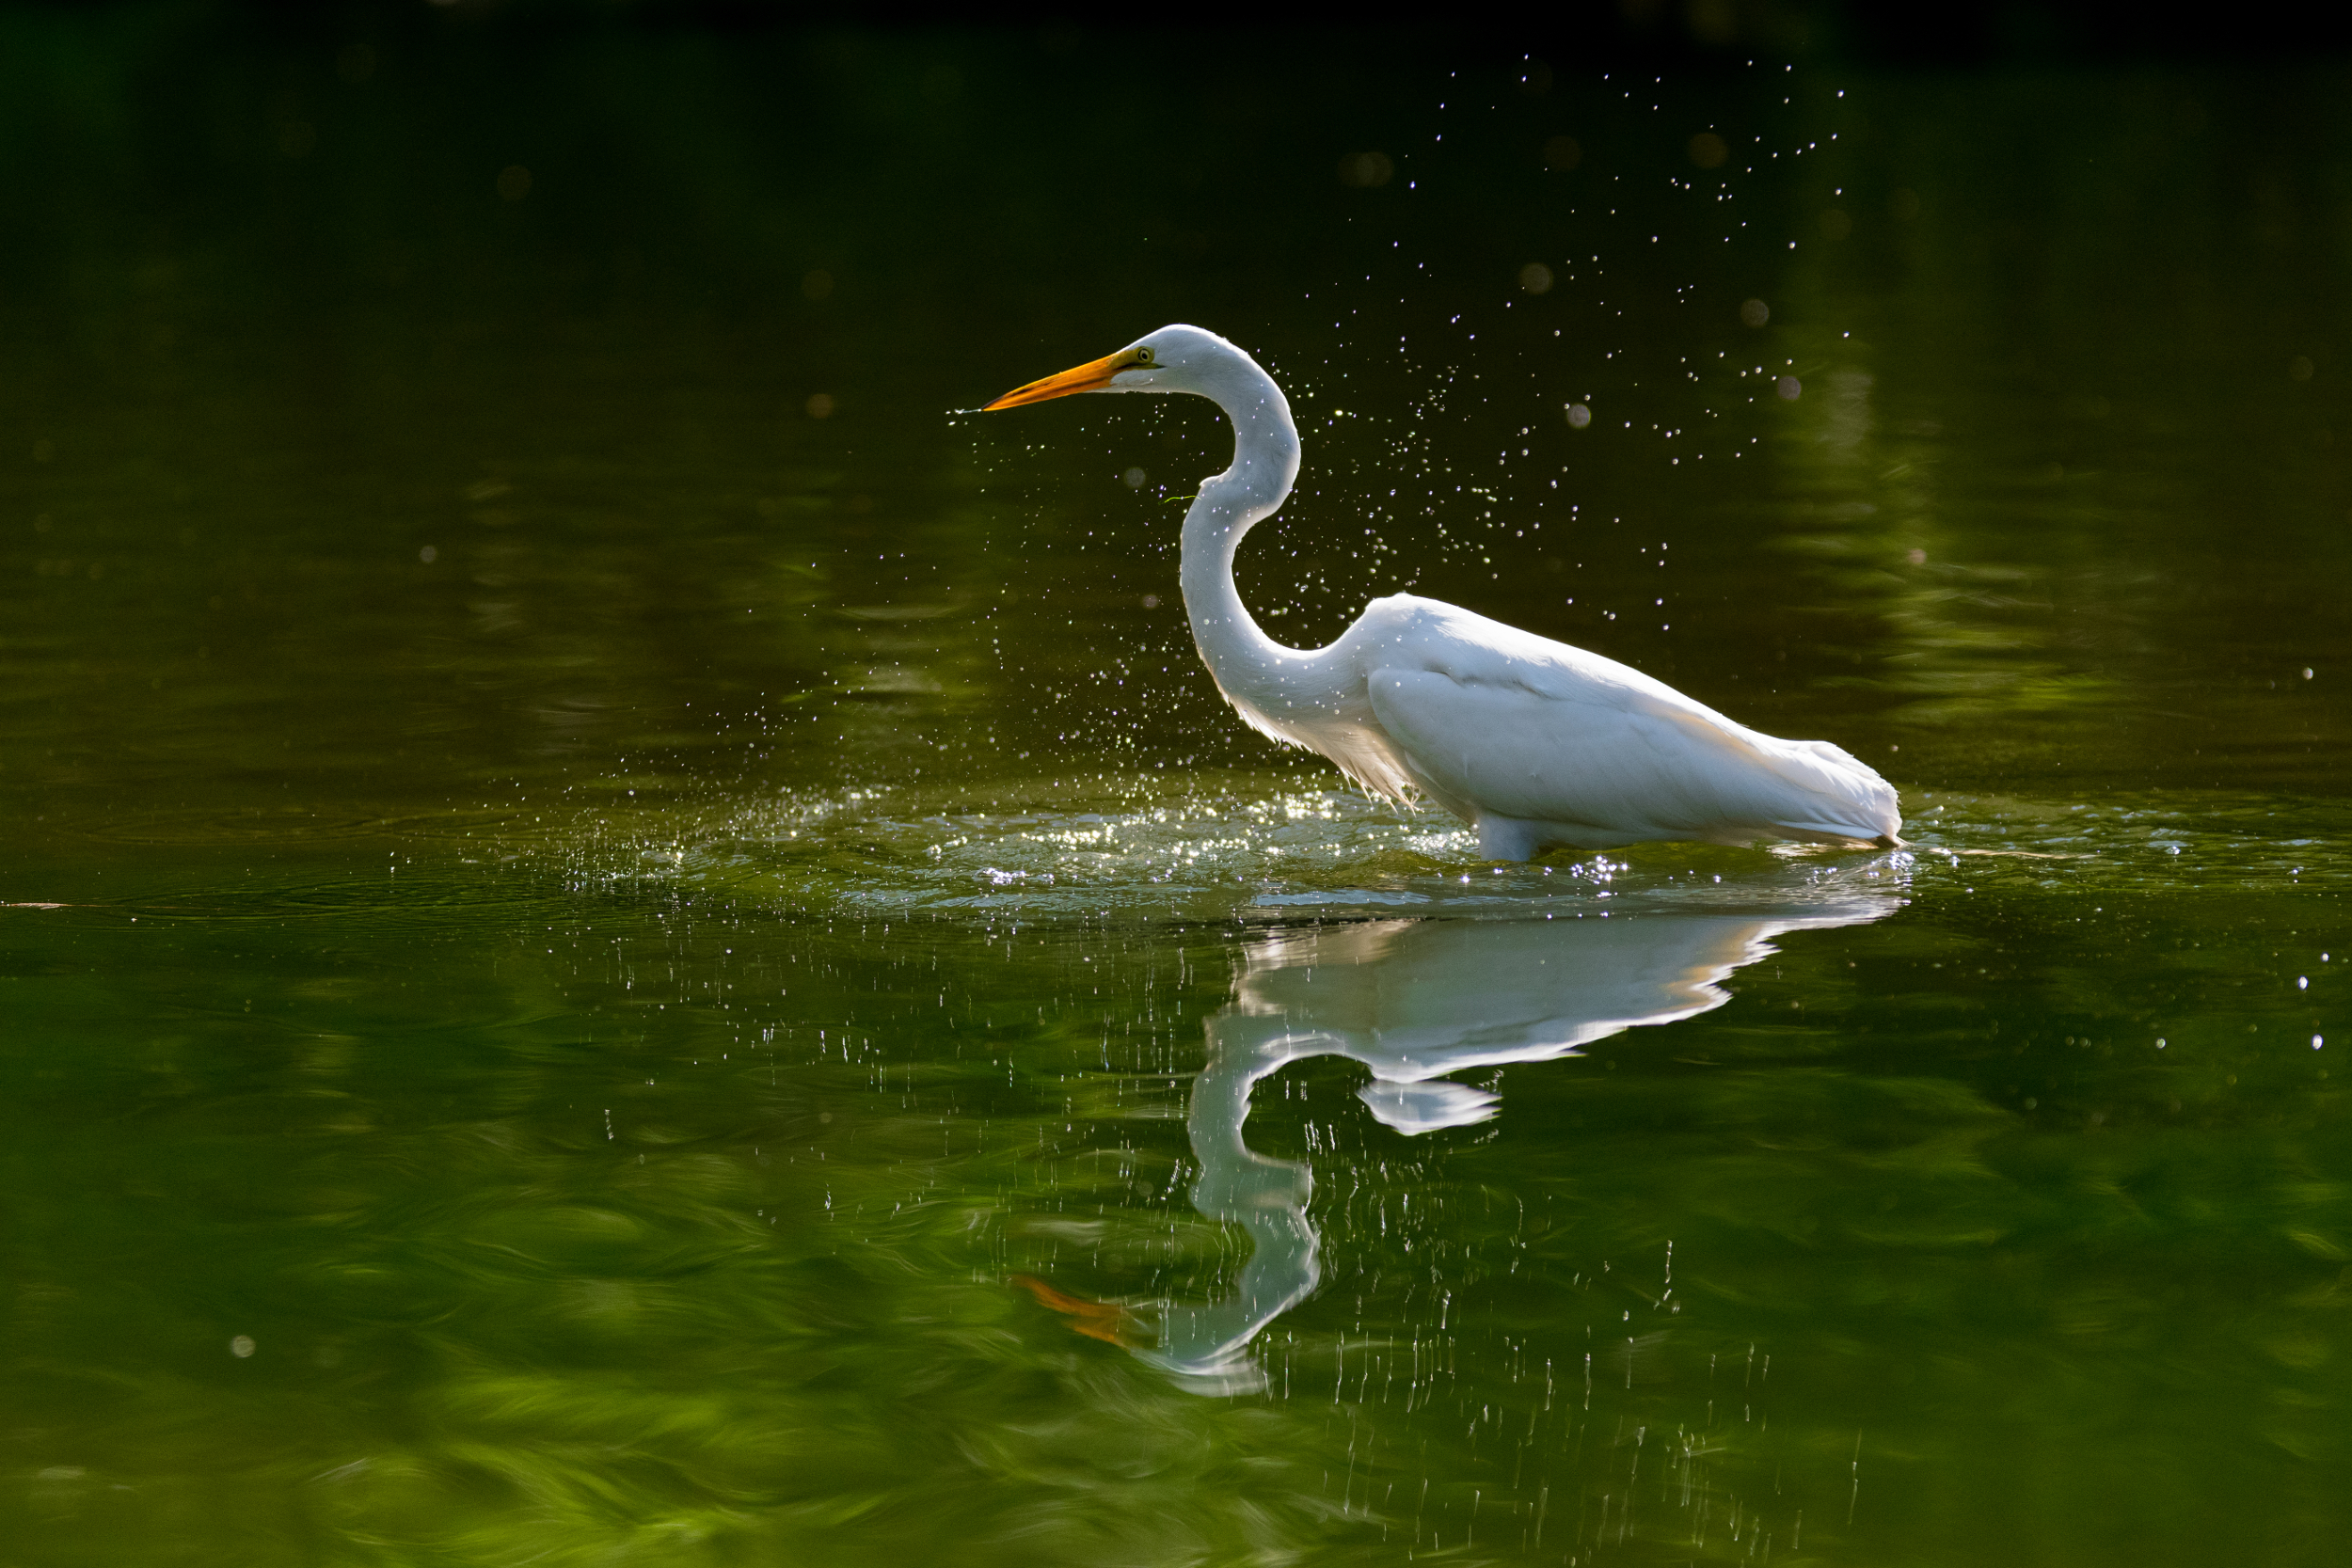 White Heron / Great Egret - Central Park, New York, New York